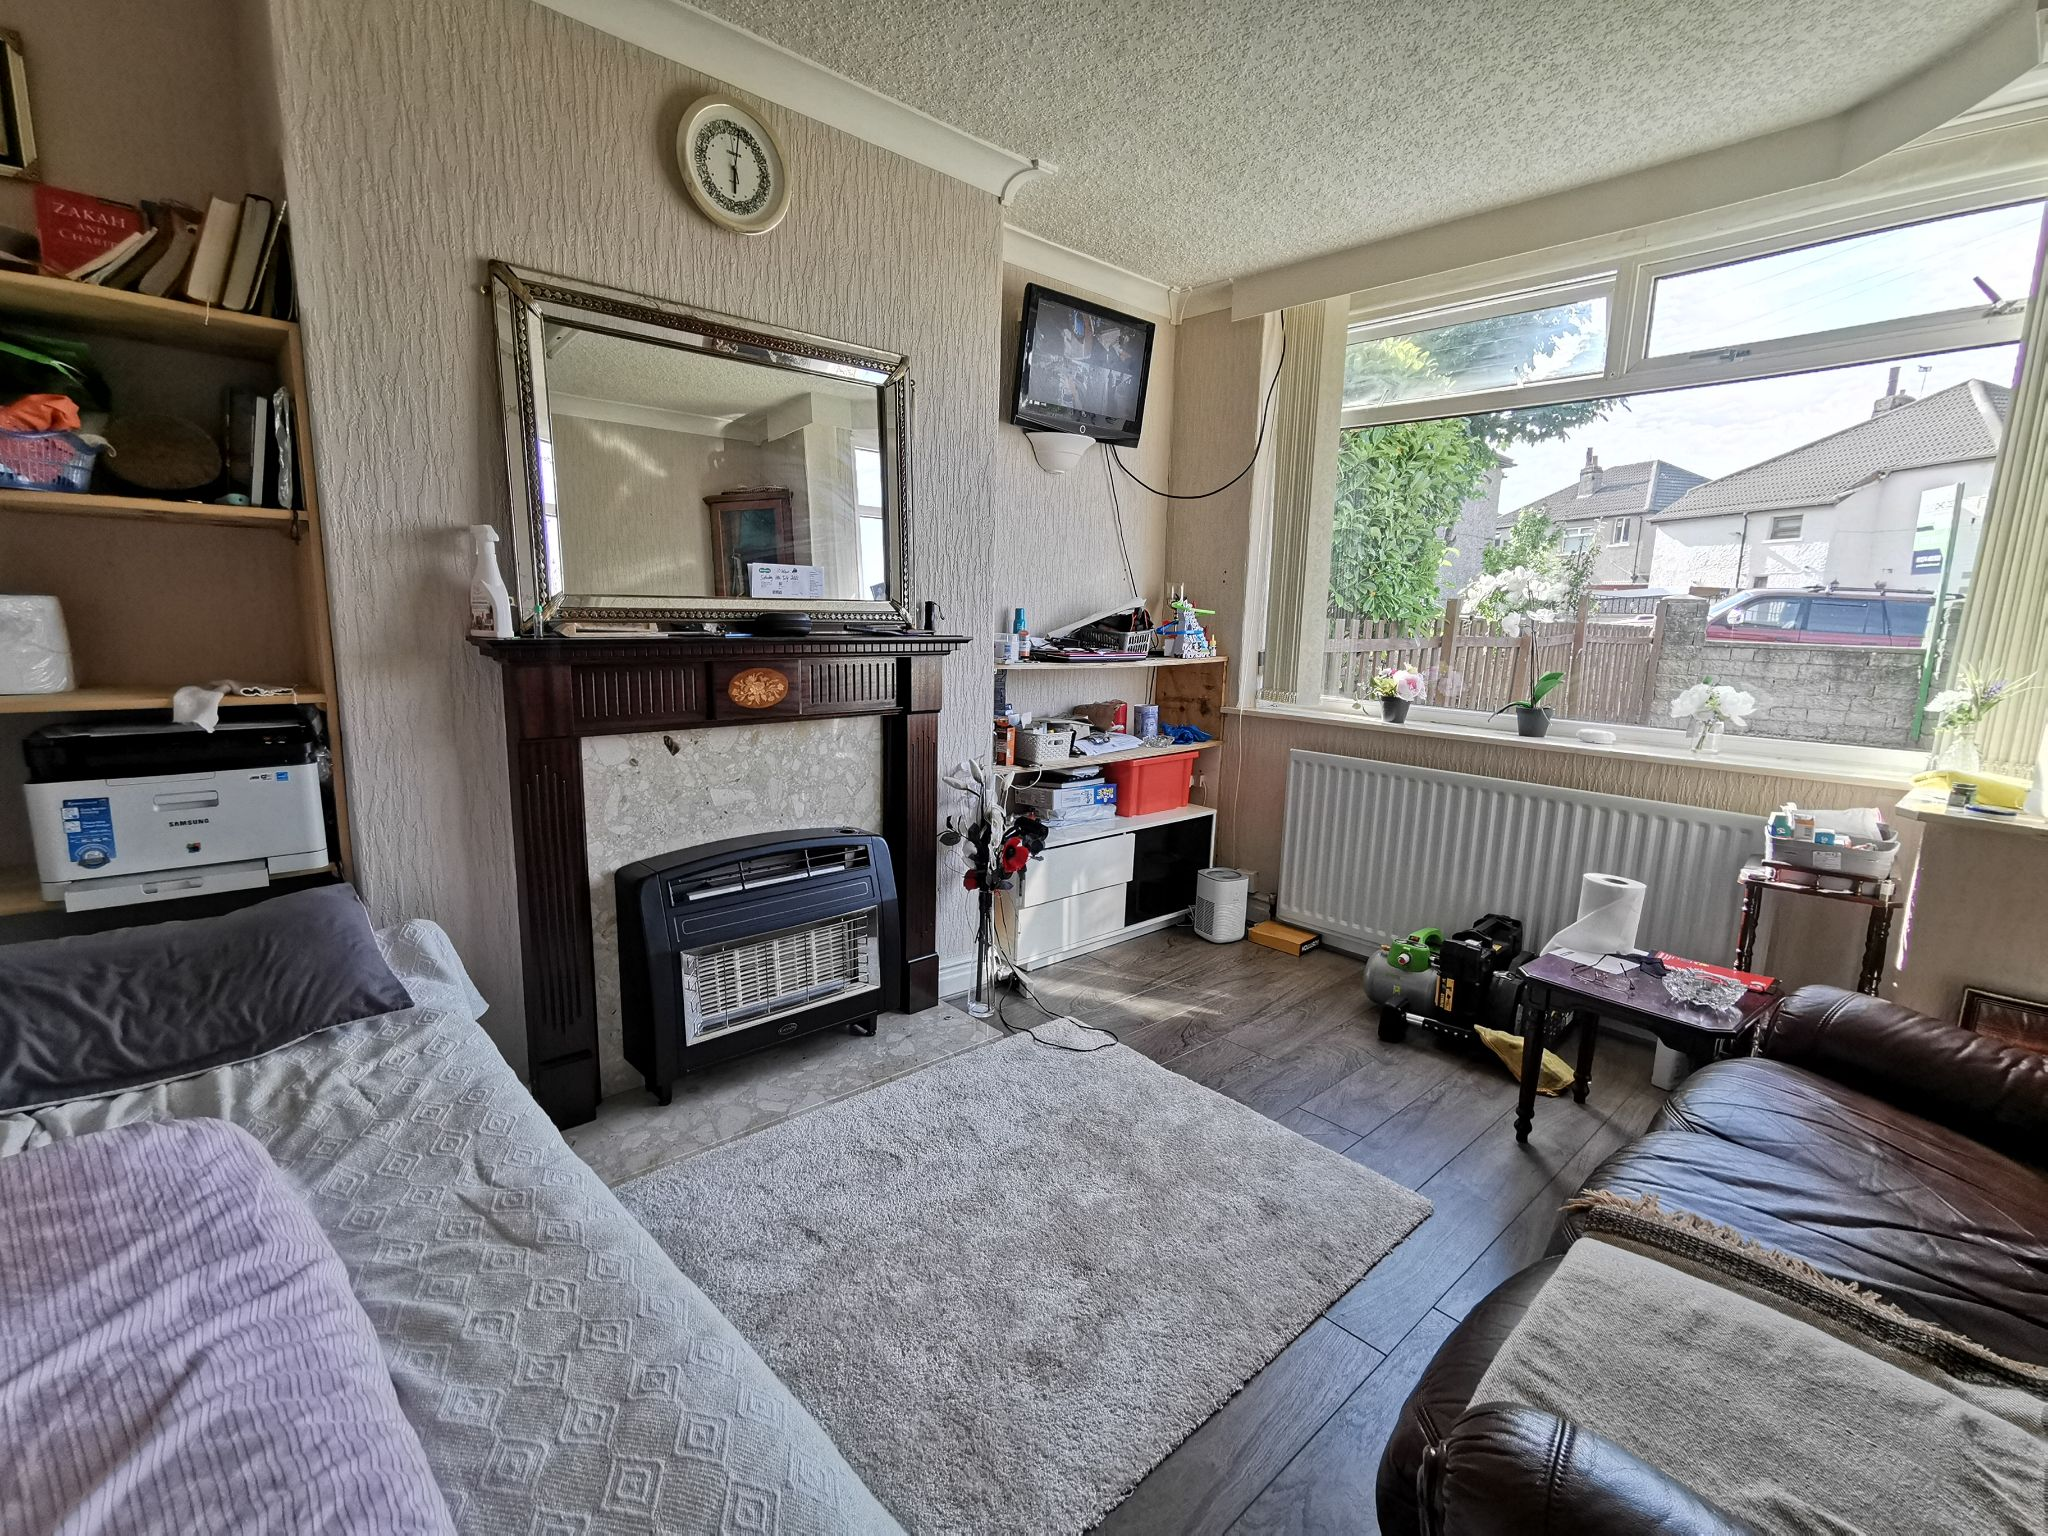 4 bedroom semi-detached house SSTC in Bradford - Photograph 2.